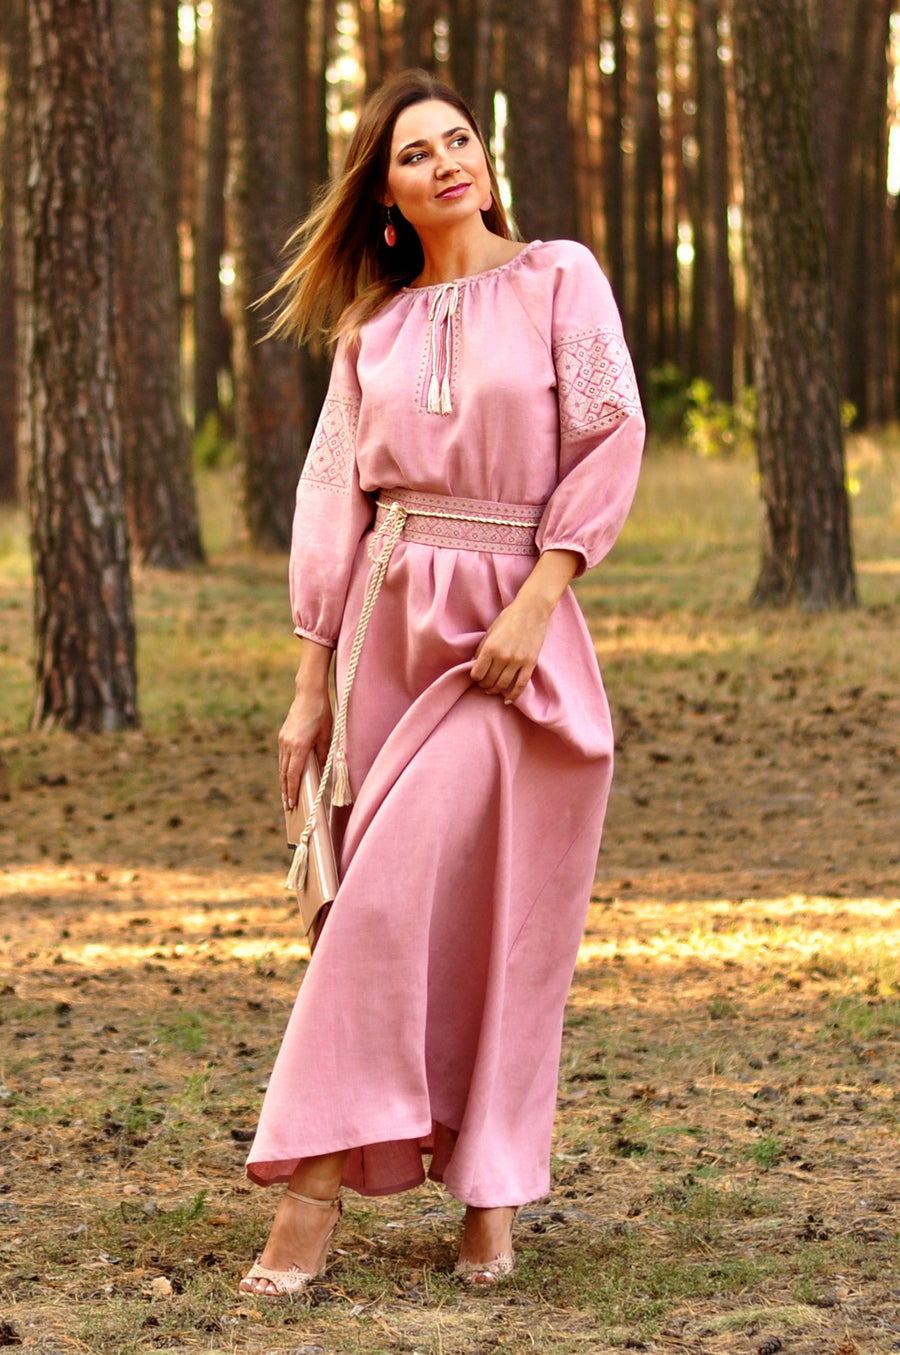 Fabulously beautiful powder pink dress